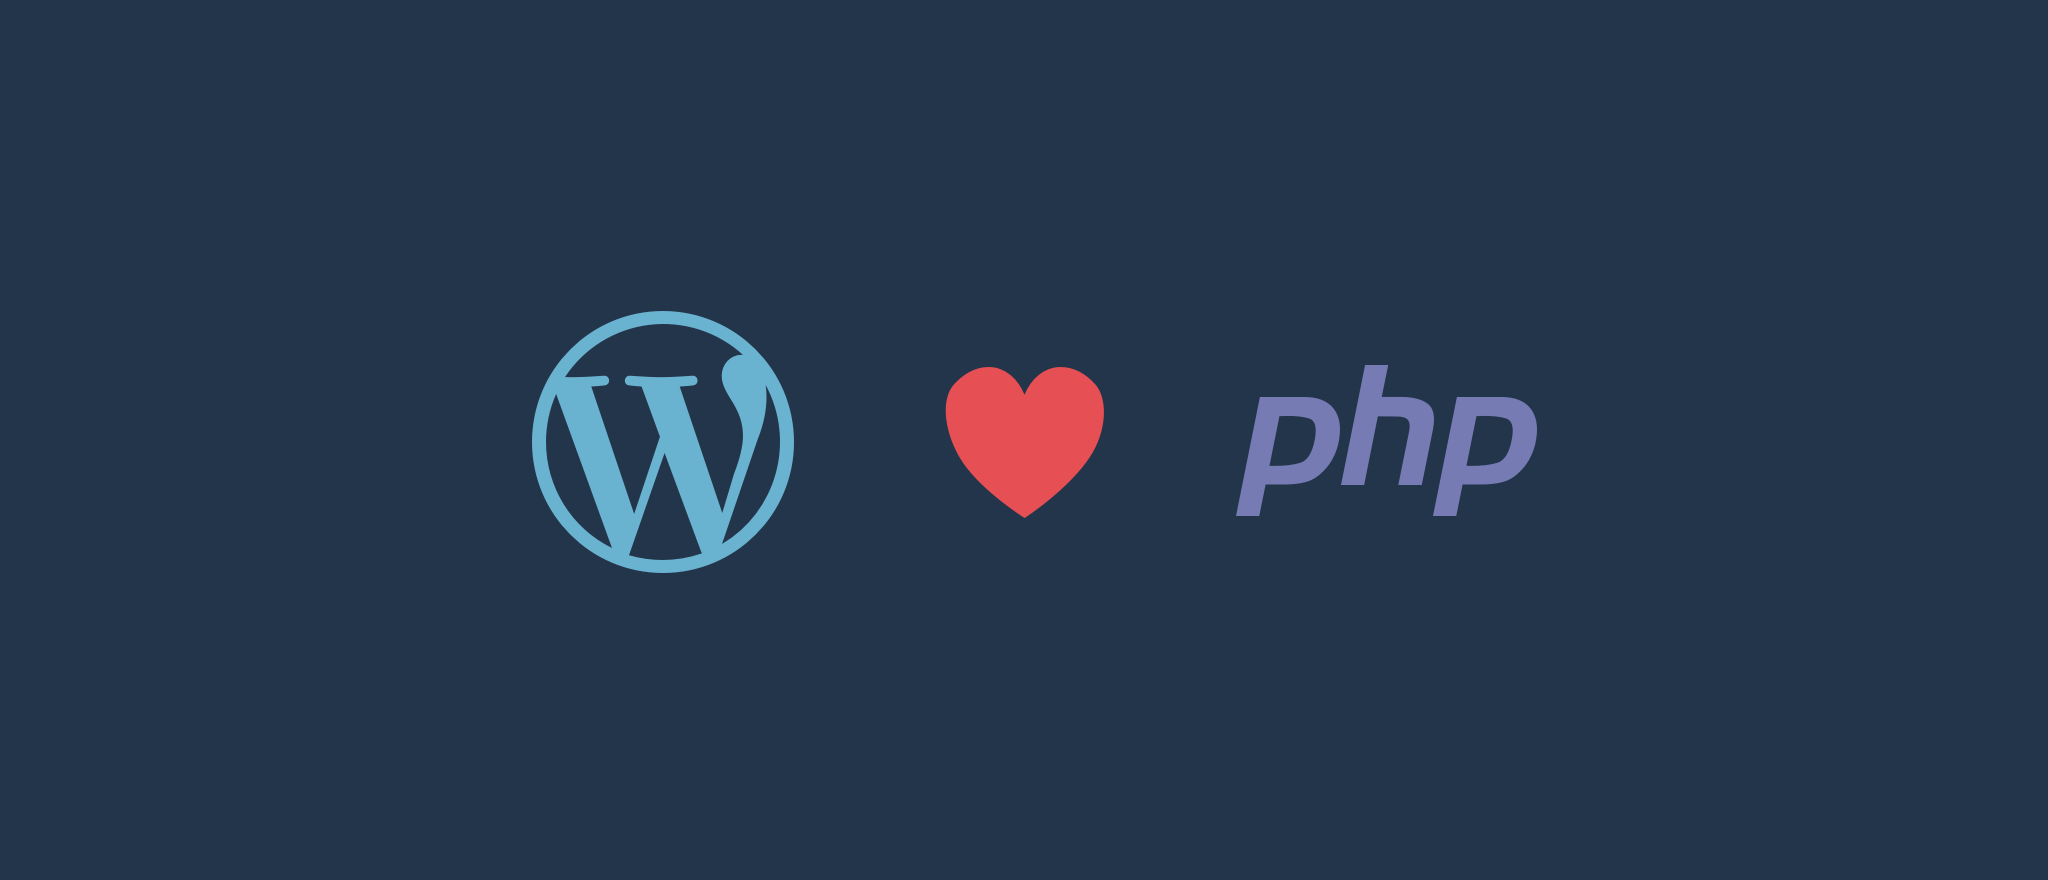 PHP 7.4 Just Came Out, and So Did Our PHP Version Switcher